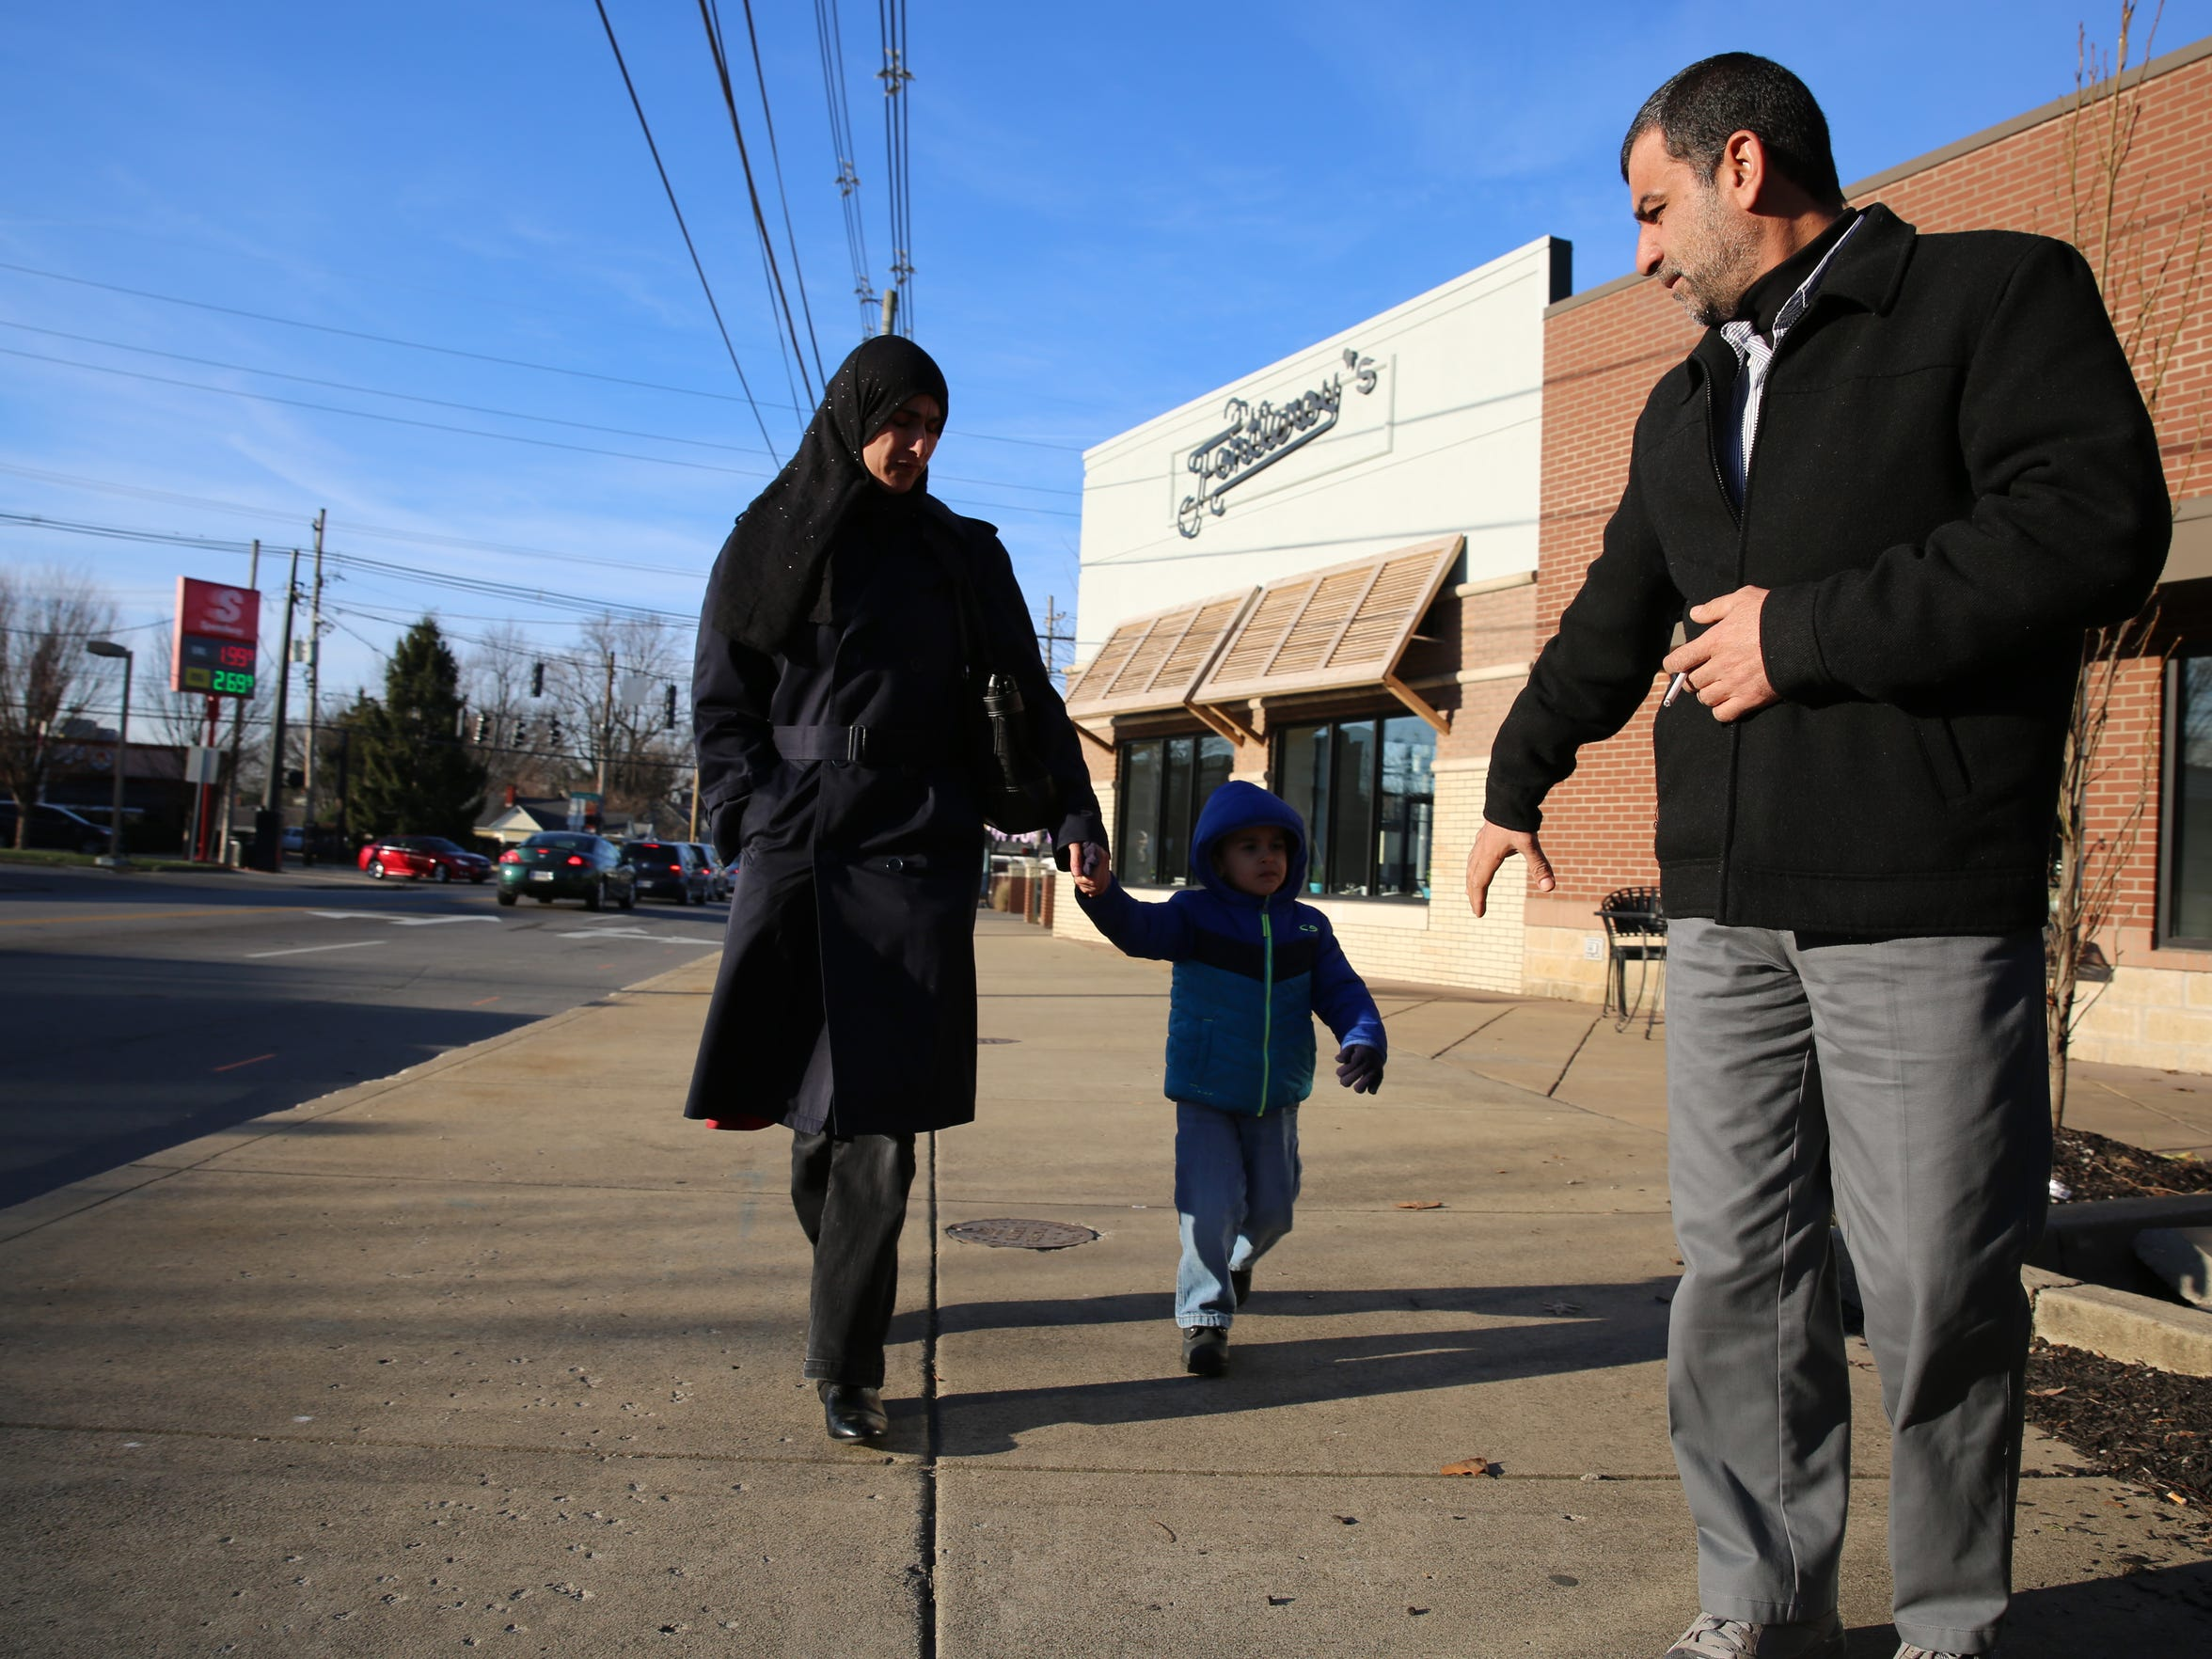 Ahmad Al Tybawi, his wife and youngest son walk from a bus stop in the Highlands to Kentucky Refugee Ministries for daily classes.